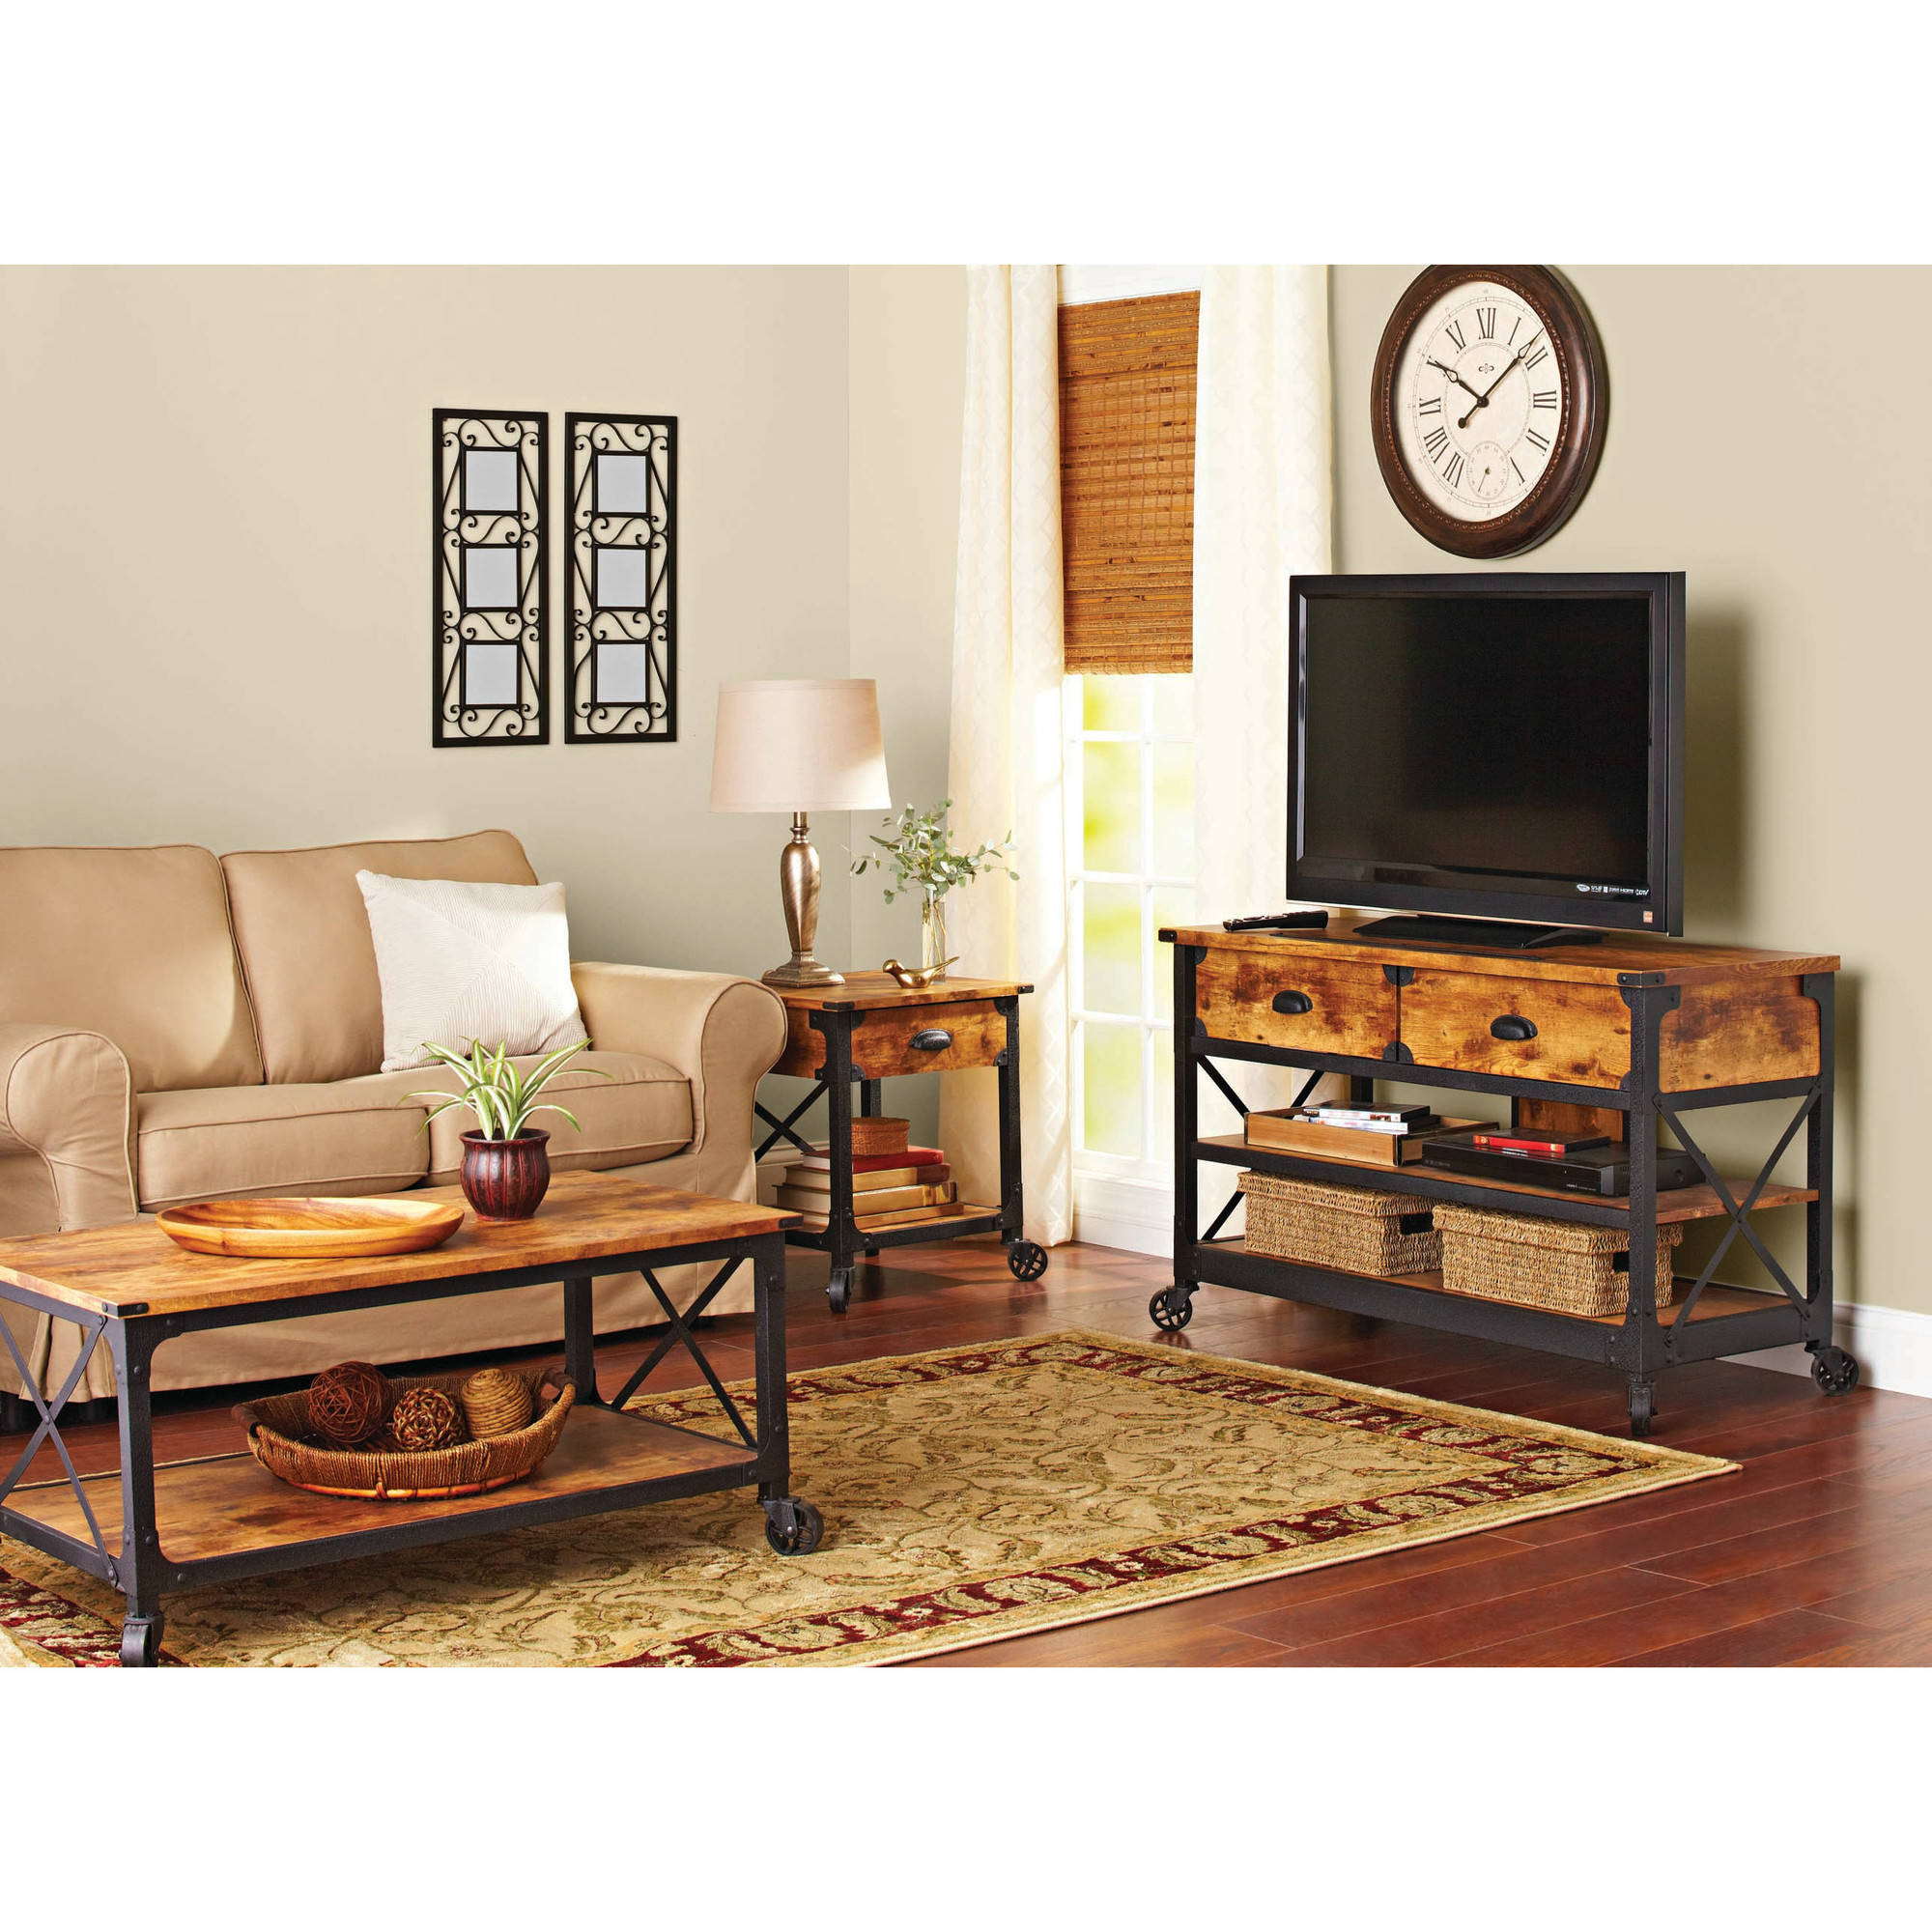 Better Homes And Gardens Rustic Country Living Room Set Walmart with Living Room Sets Walmart